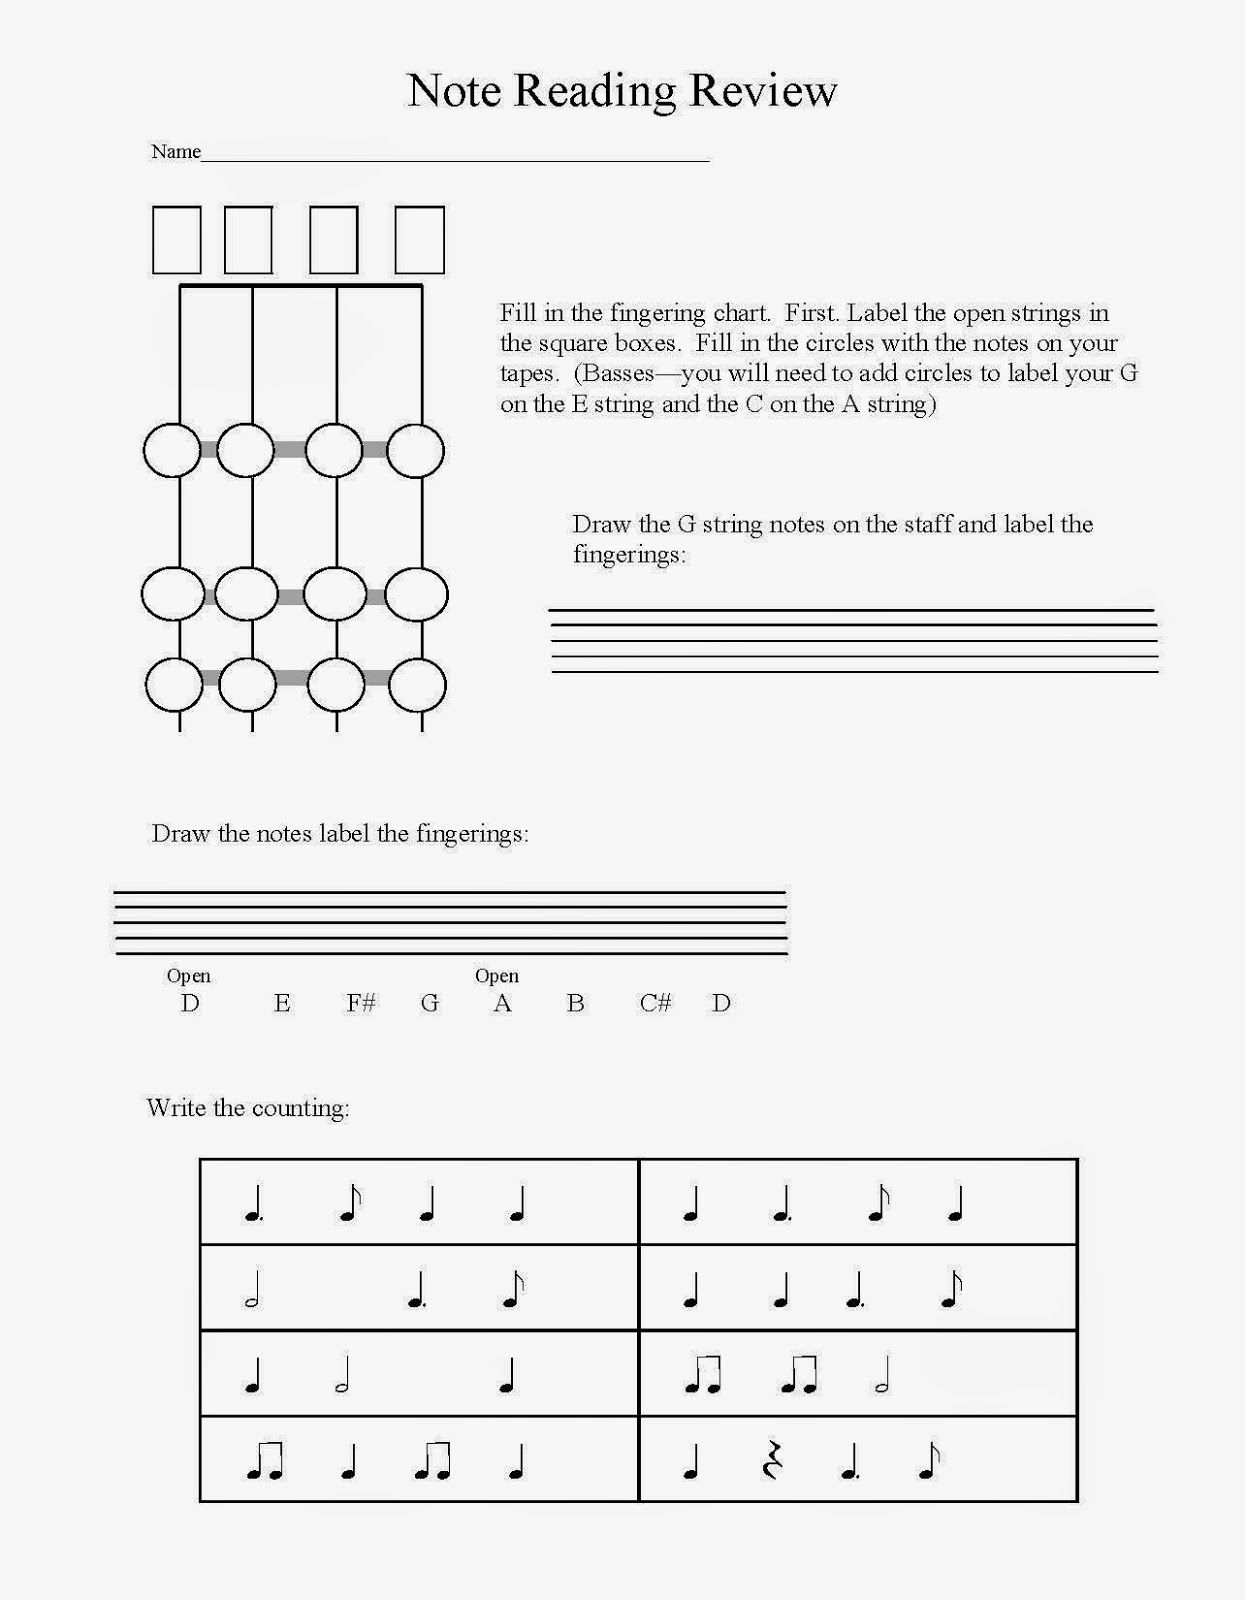 Mid Year Beginning Orchestra Quick Assessment Music Education